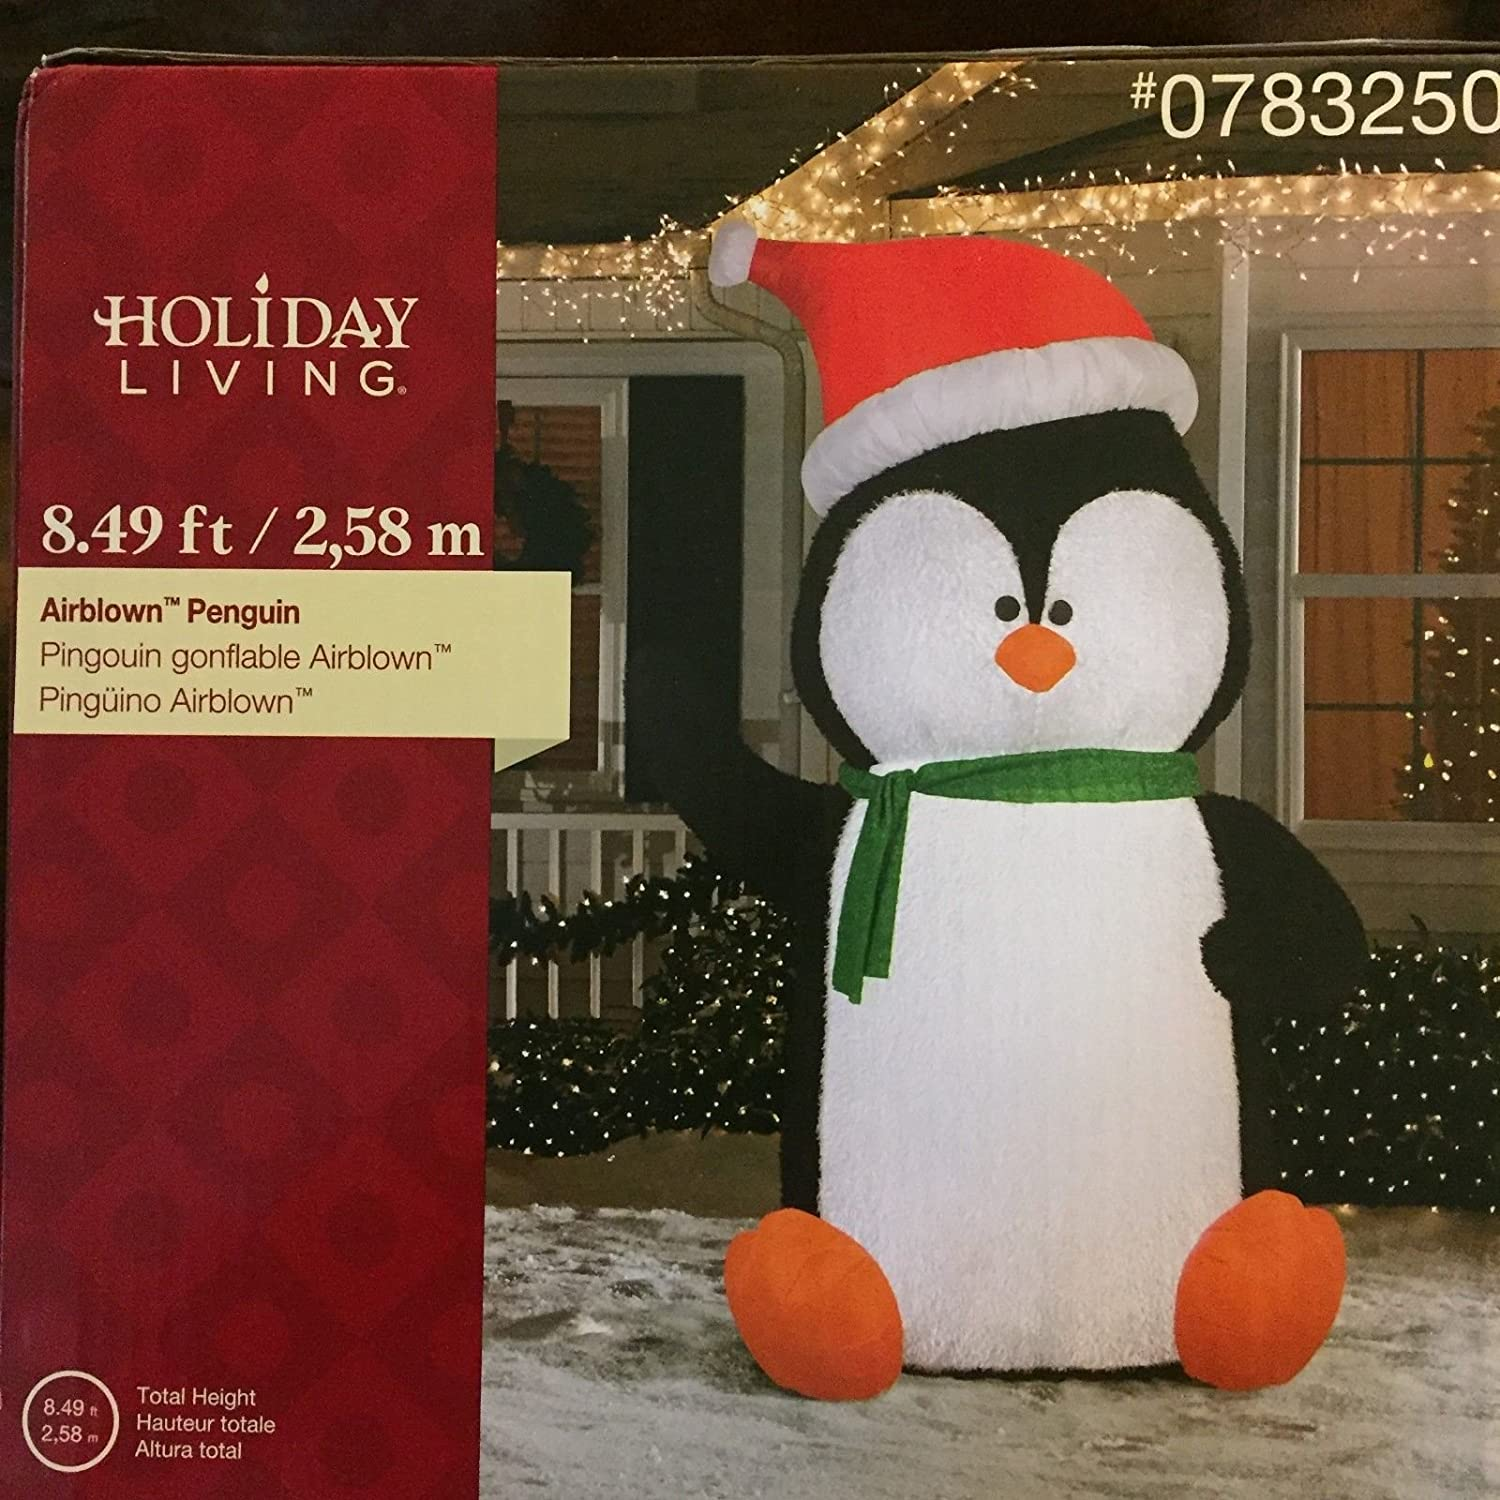 Amazoncom Gemmy 849 Inflatable Airblown Penguin Christmas Holiday Yard Decoration